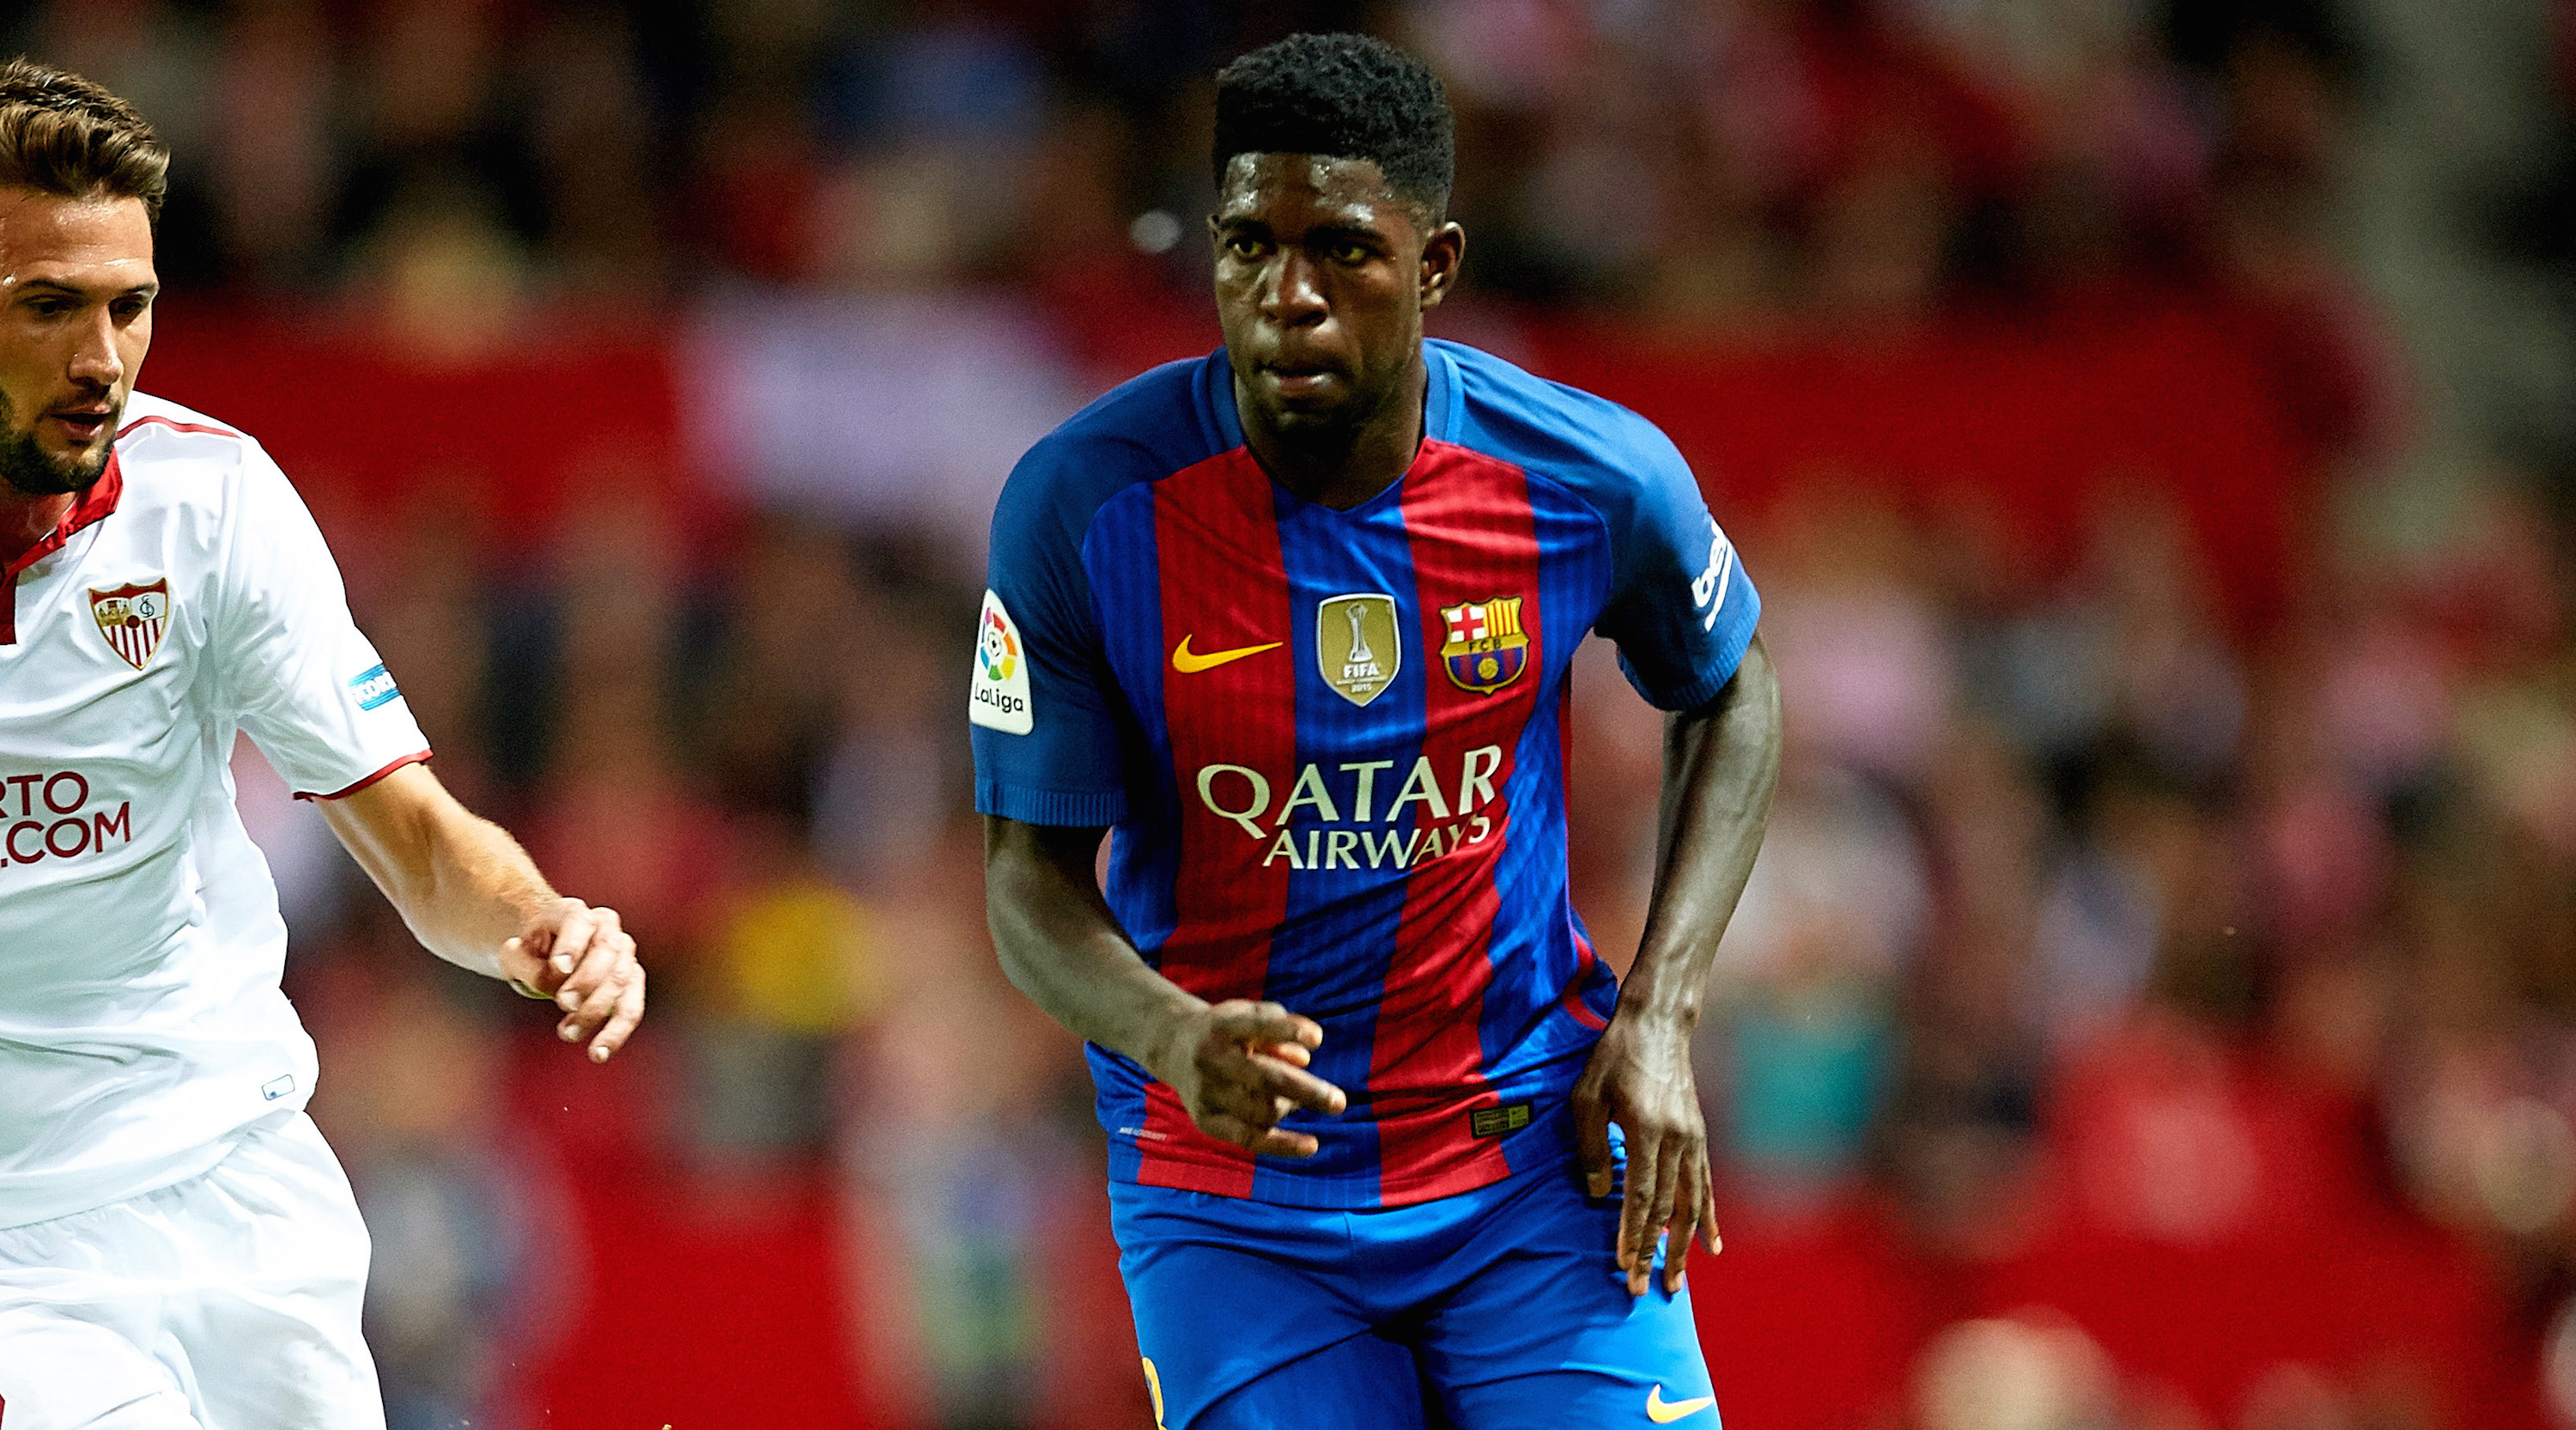 SEVILLE, SPAIN - NOVEMBER 06: Samuel Umtiti of FC Barcelona (R) being followed by Franco Vazquez of Sevilla FC (L) during the match between Sevilla FC vs FC Barcelona as part of La Liga at Ramon Sanchez Pizjuan Stadium on November 6, 2016 in Seville, Spain. (Photo by Aitor Alcalde/Getty Images)